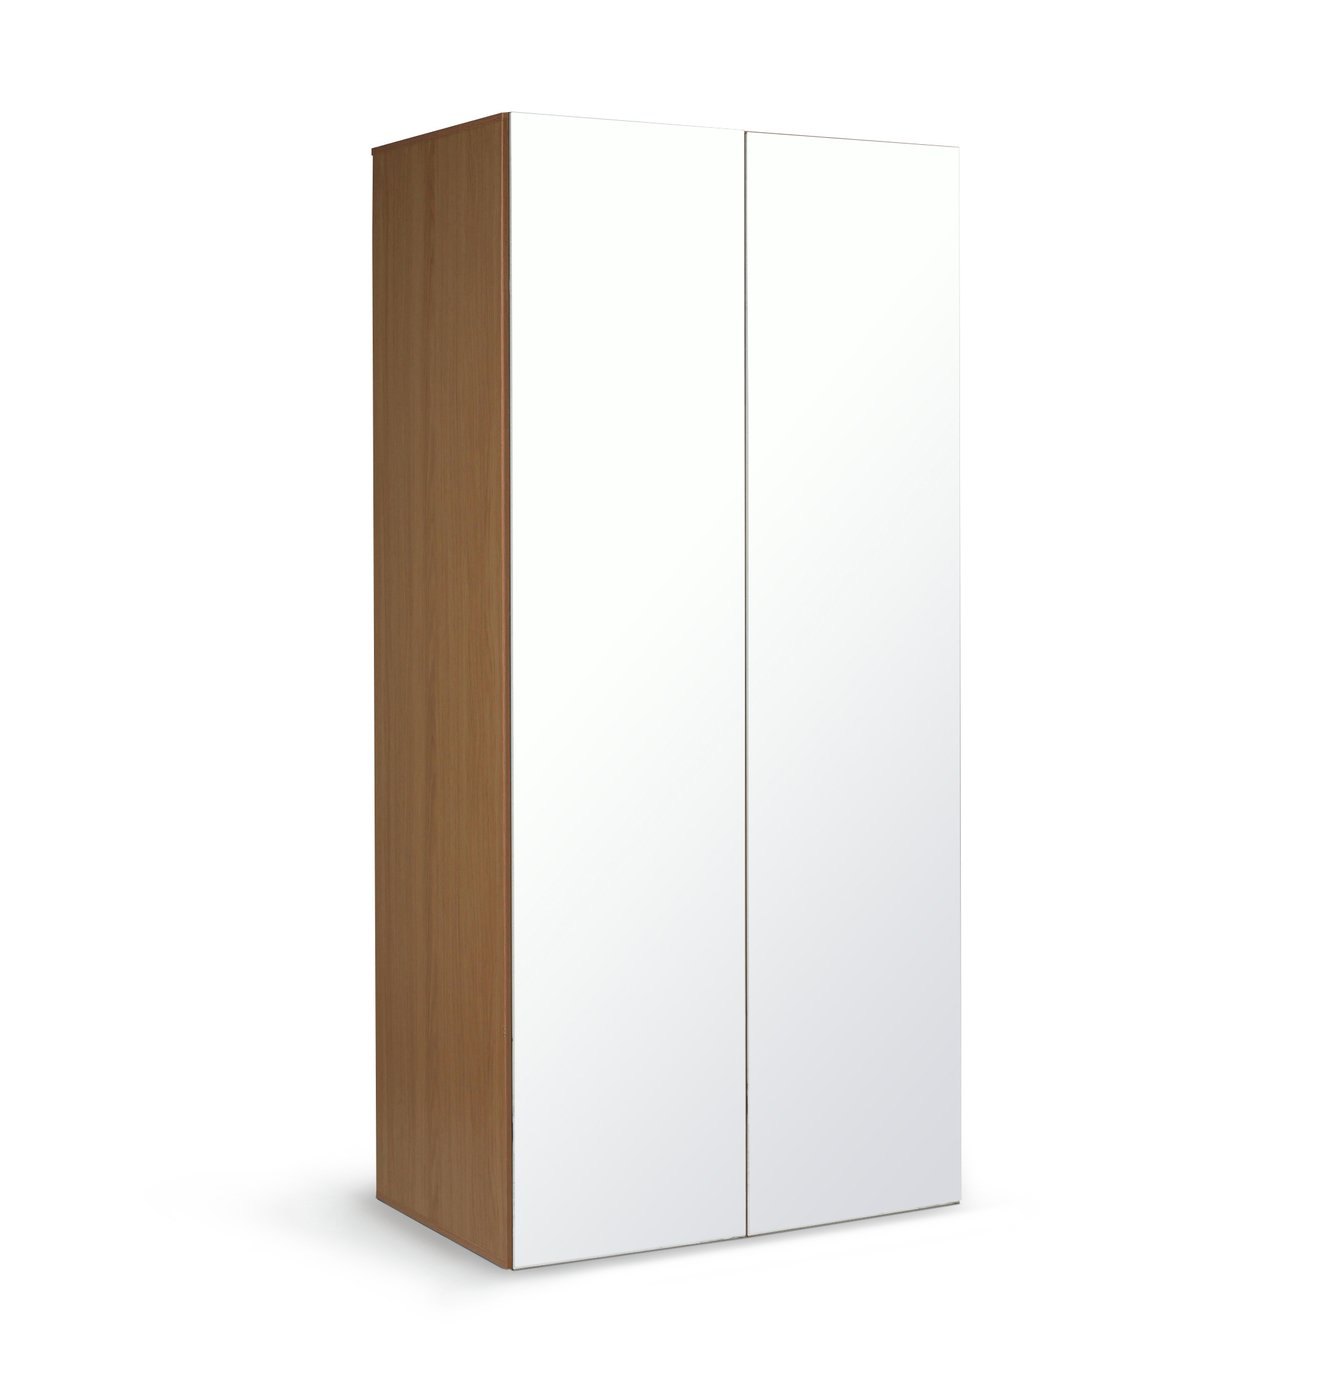 Argos Home Atlas 2 Door Mirrored Tall Wardrobe - Oak Effect